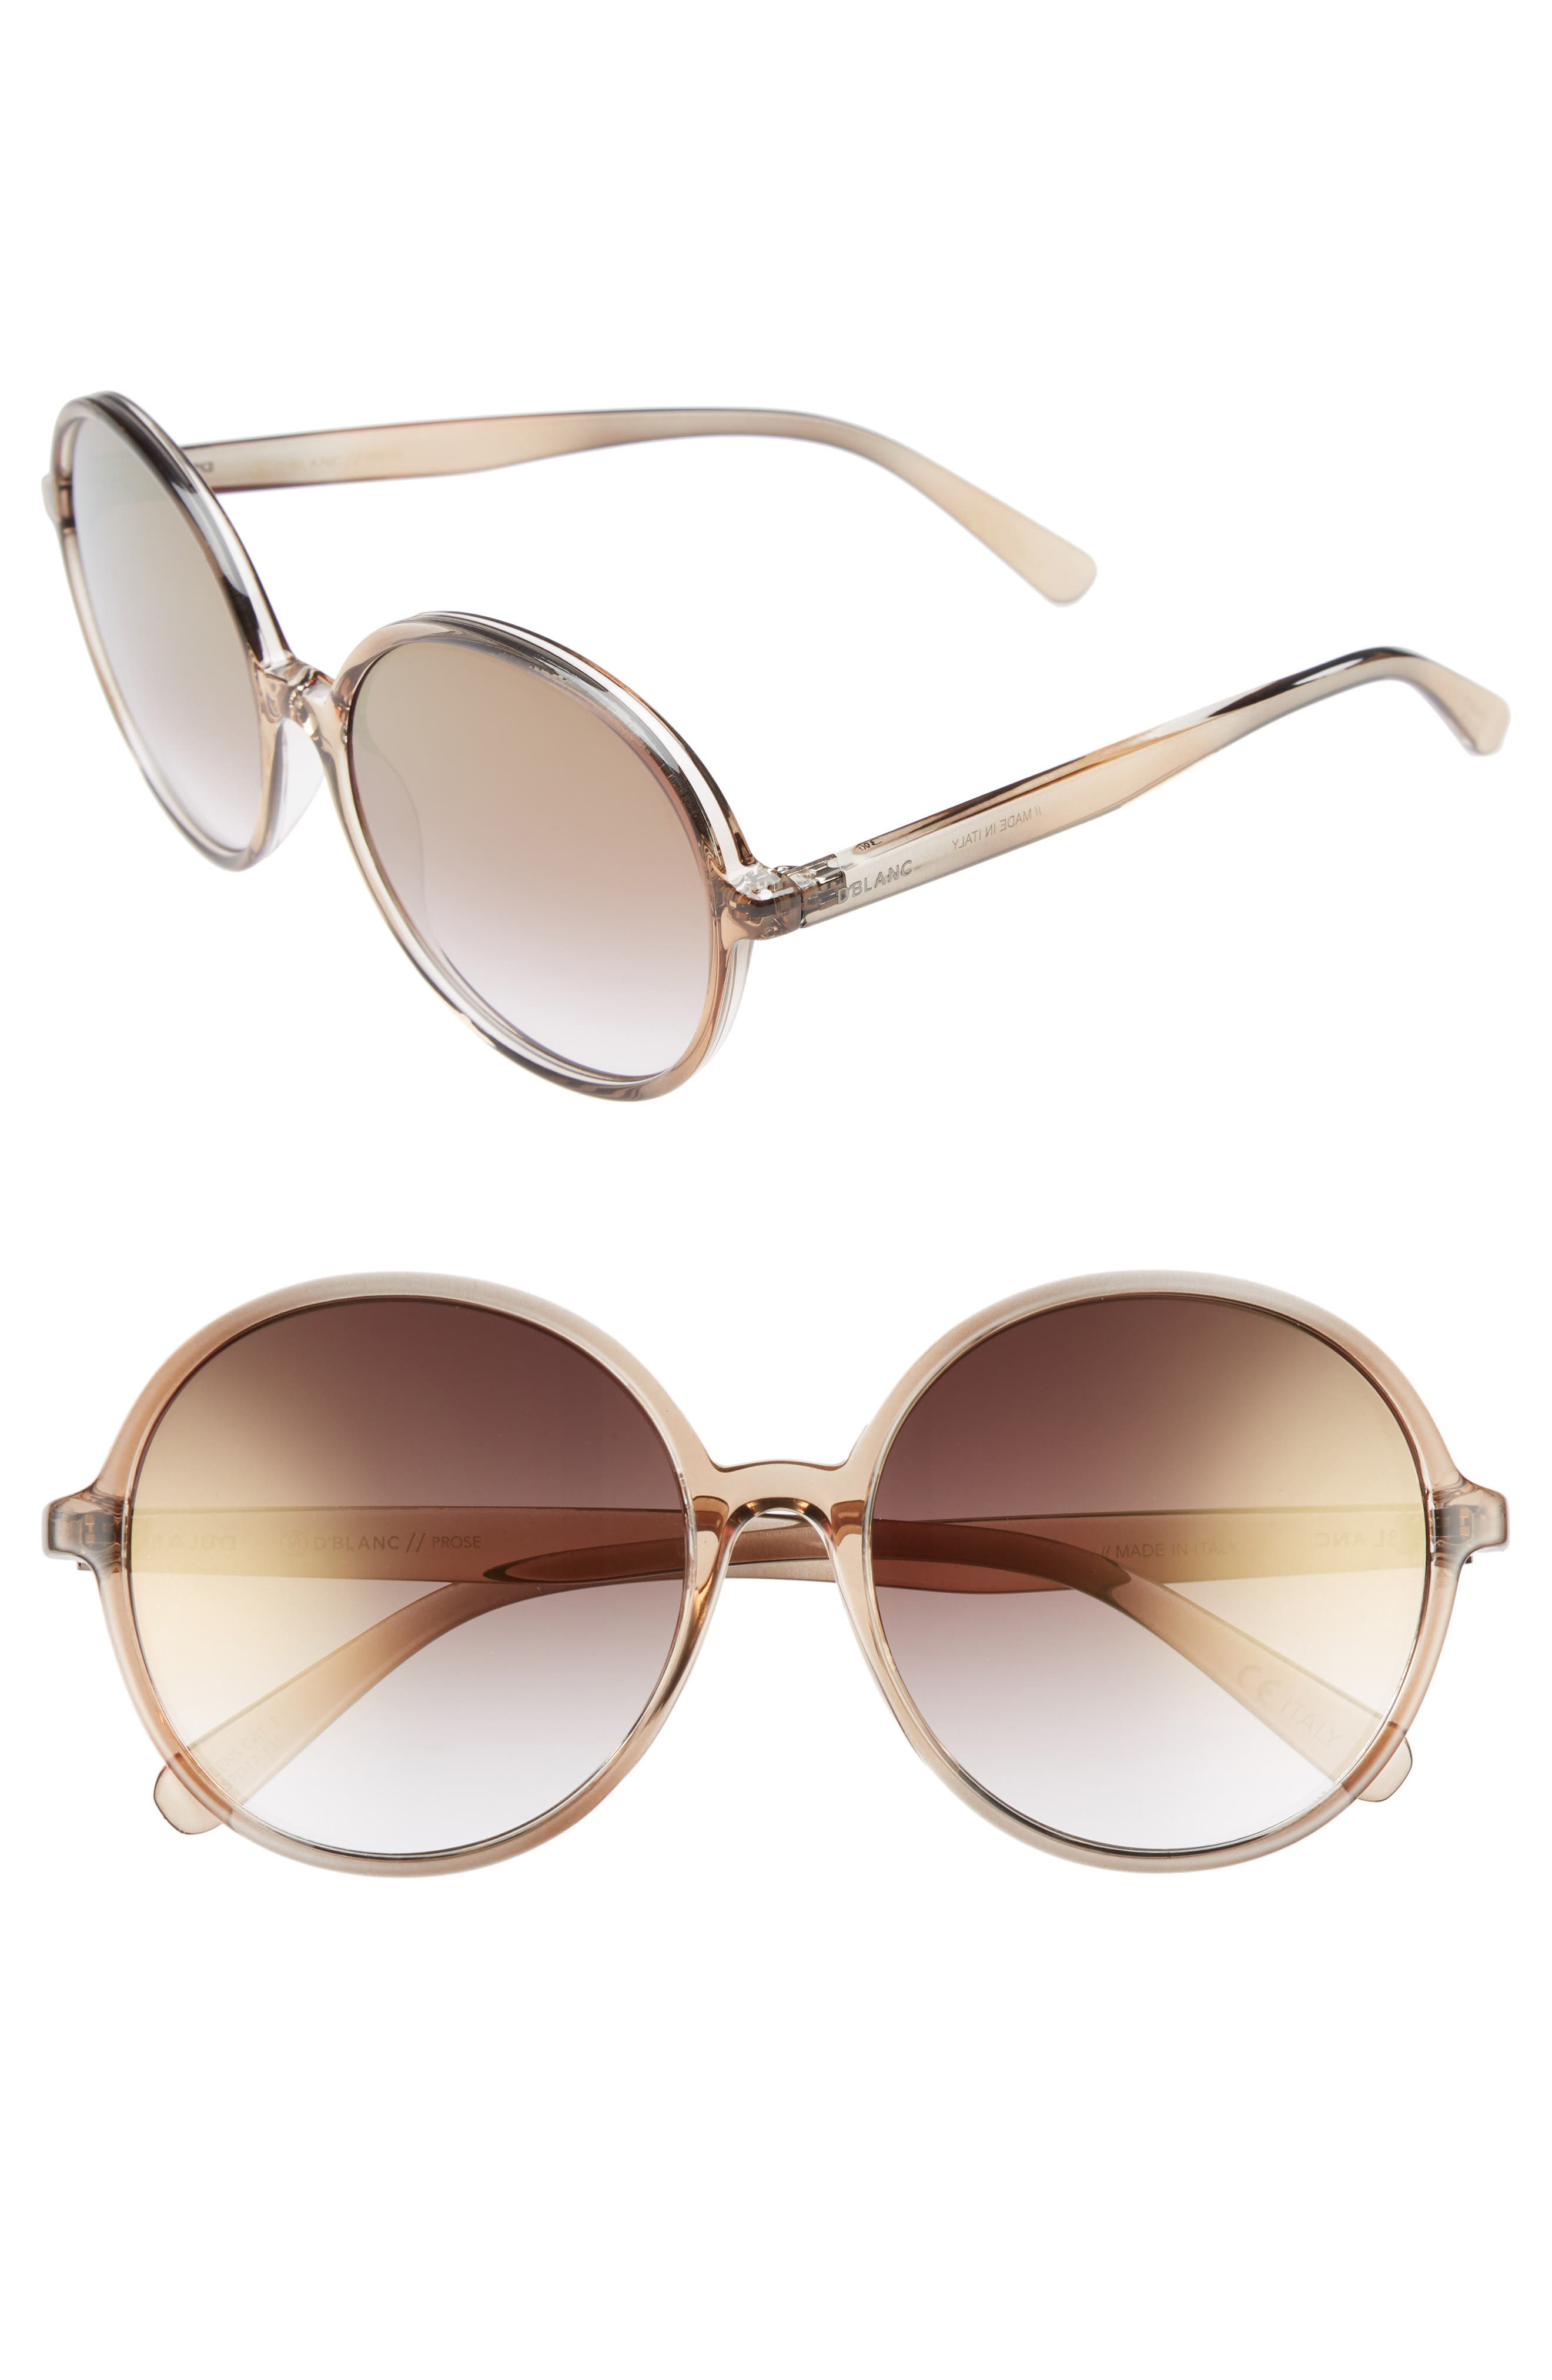 D'BLANC Prose 59mm Round Sunglasses,                         Main,                         color, Brown Ombre